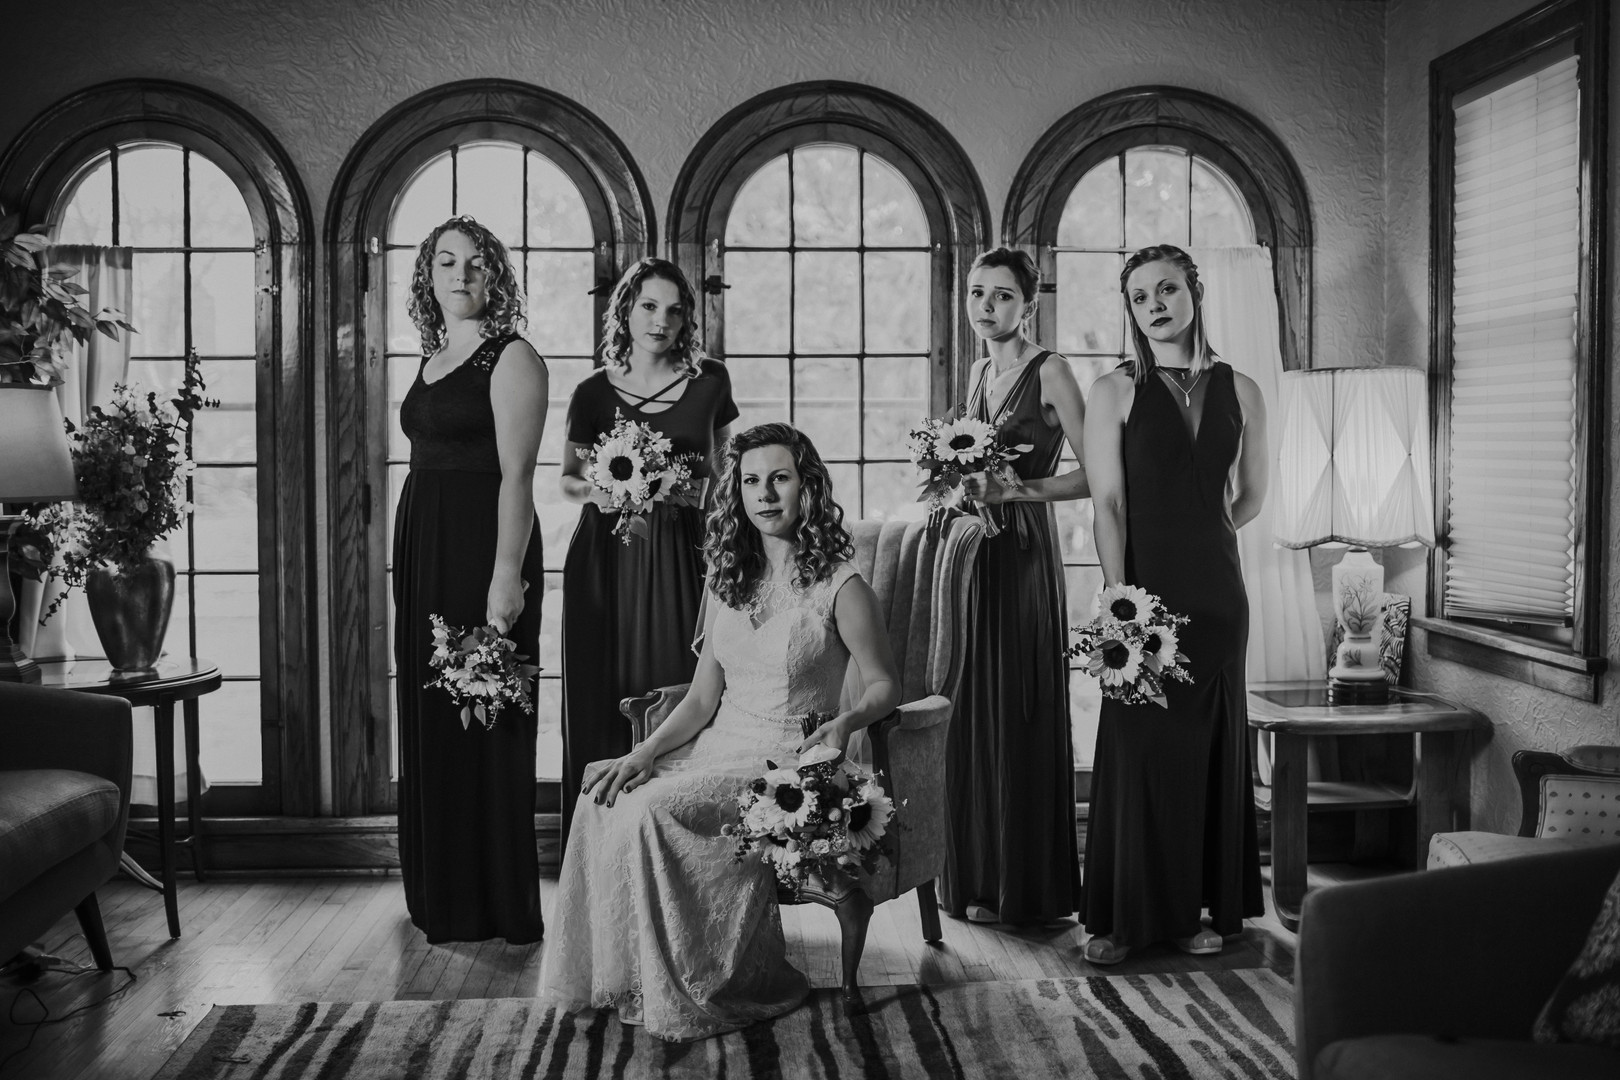 A bridal party poses in front of arches windows at a Downtown Milwaukee Wisconsin Wedding